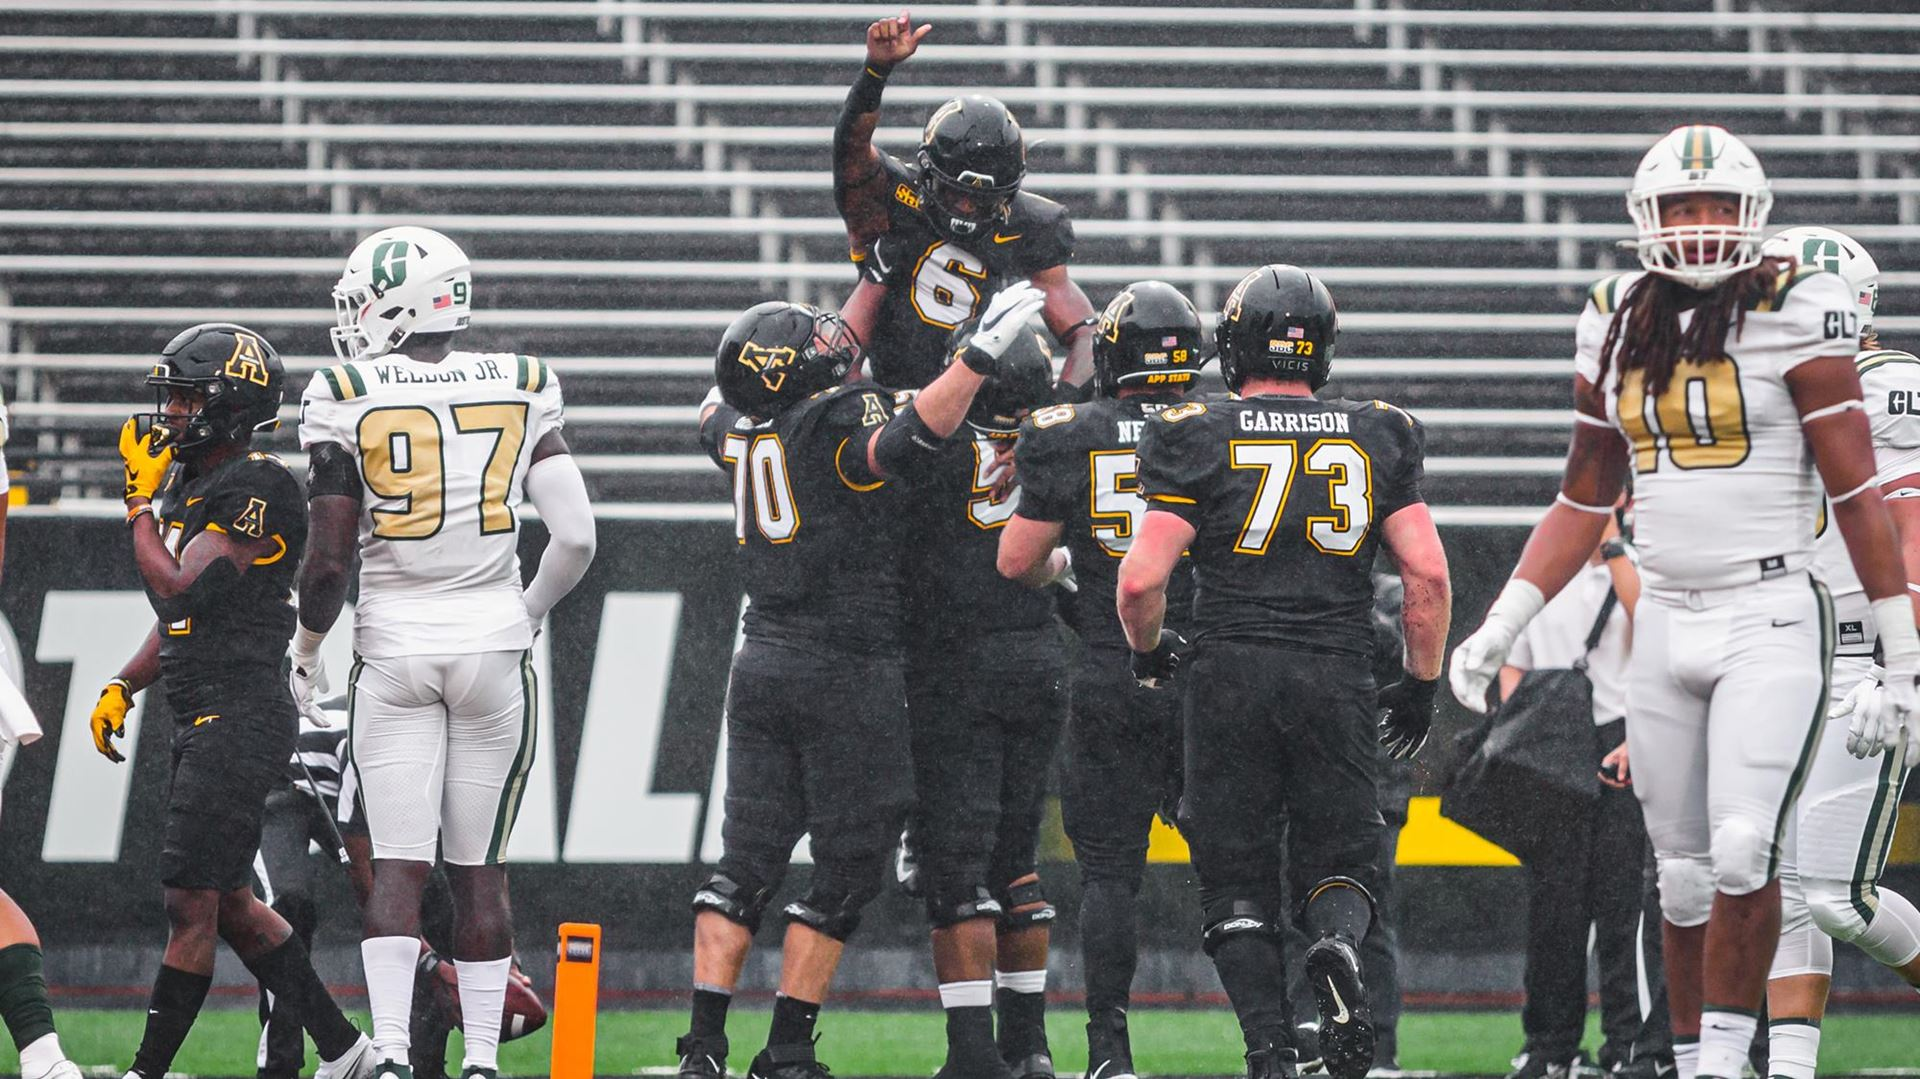 App State Opens 2020 Season With Win Over 49ers